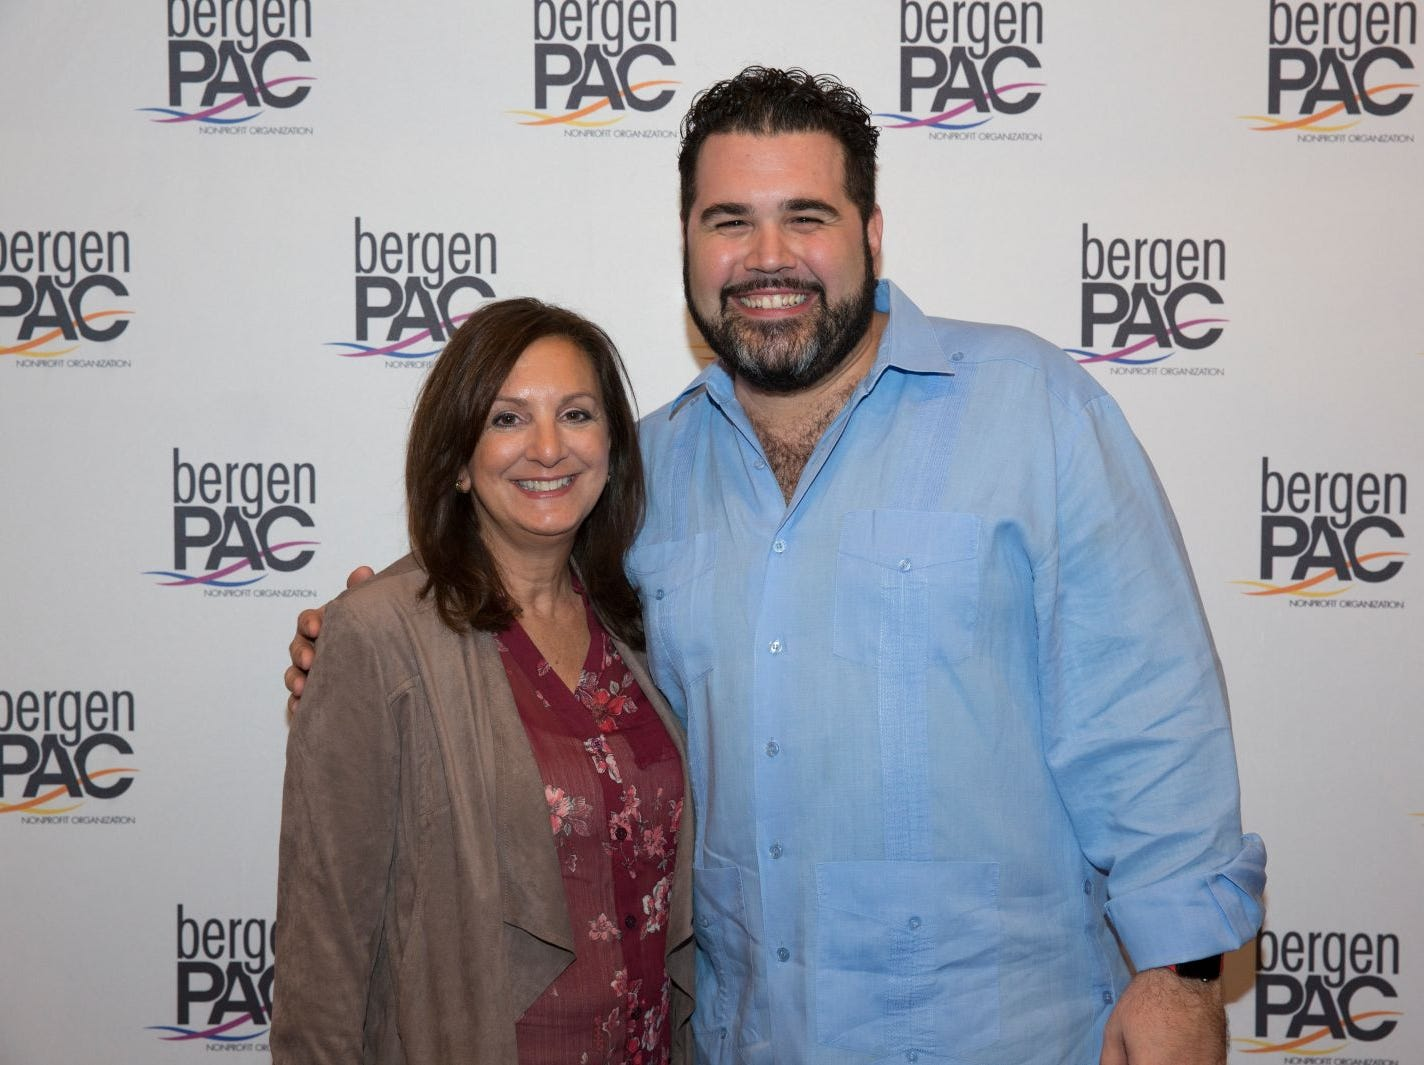 Venetia DiMarzo, Alex Diaz. BergenPAC held its annual fall gala featuring John Fogerty in Englewood. This year's honoree was Fernando Garip, from Wilmington Trust and M&T Bank. 11/08/2018